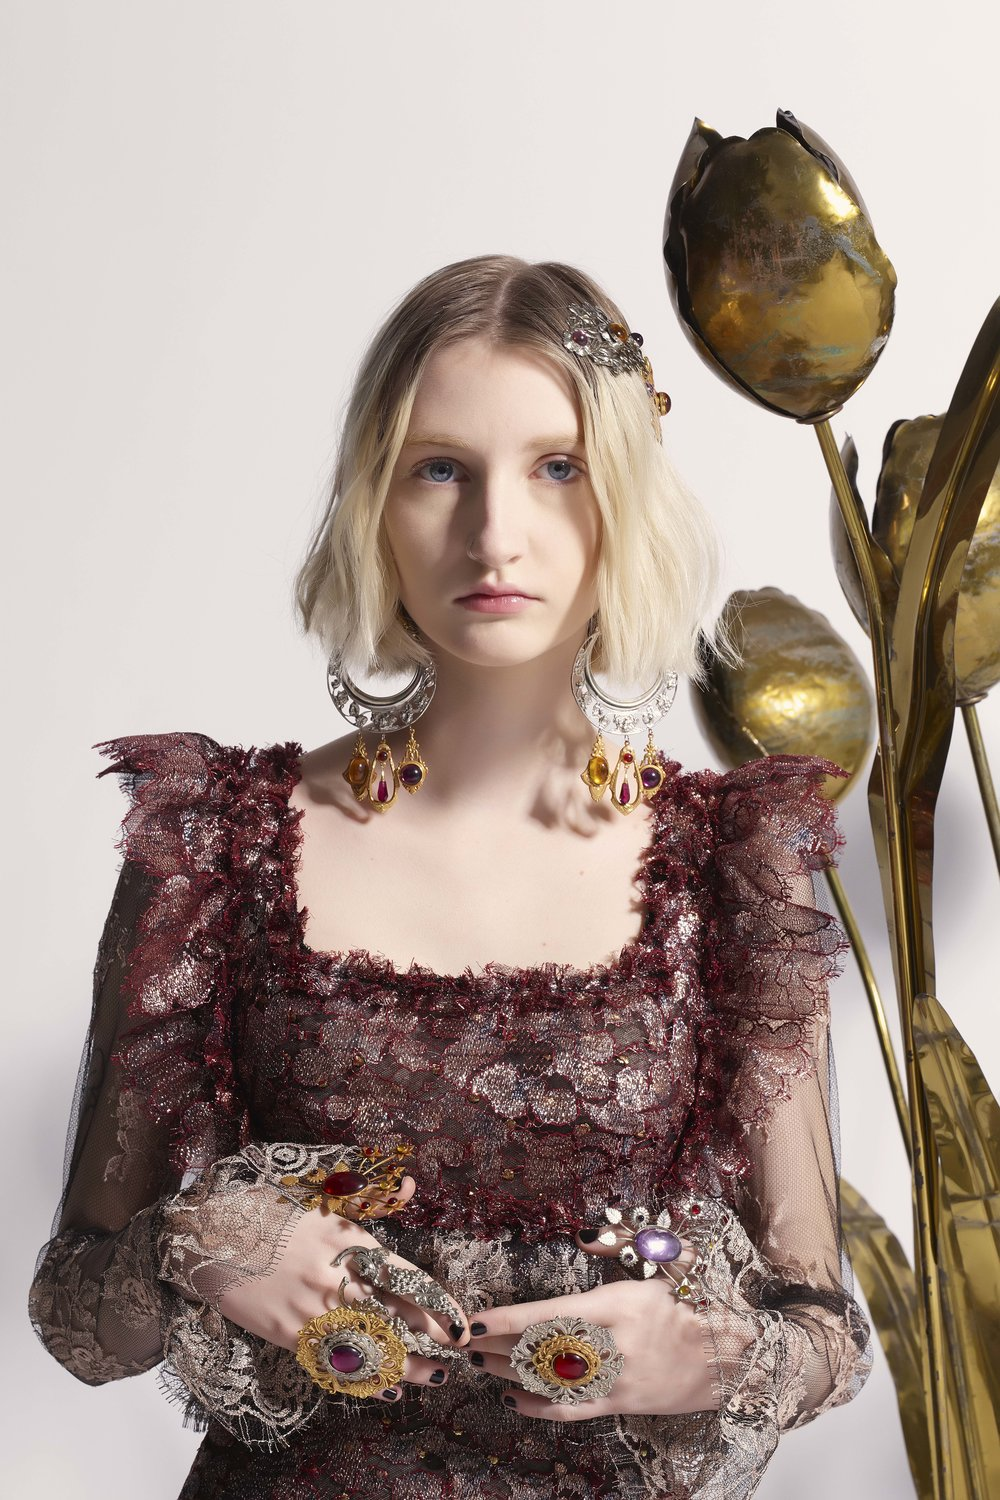 RODARTE_LOOK_06_B_AUTUMN_DEWILDE_L_059_FINAL_JB.jpg